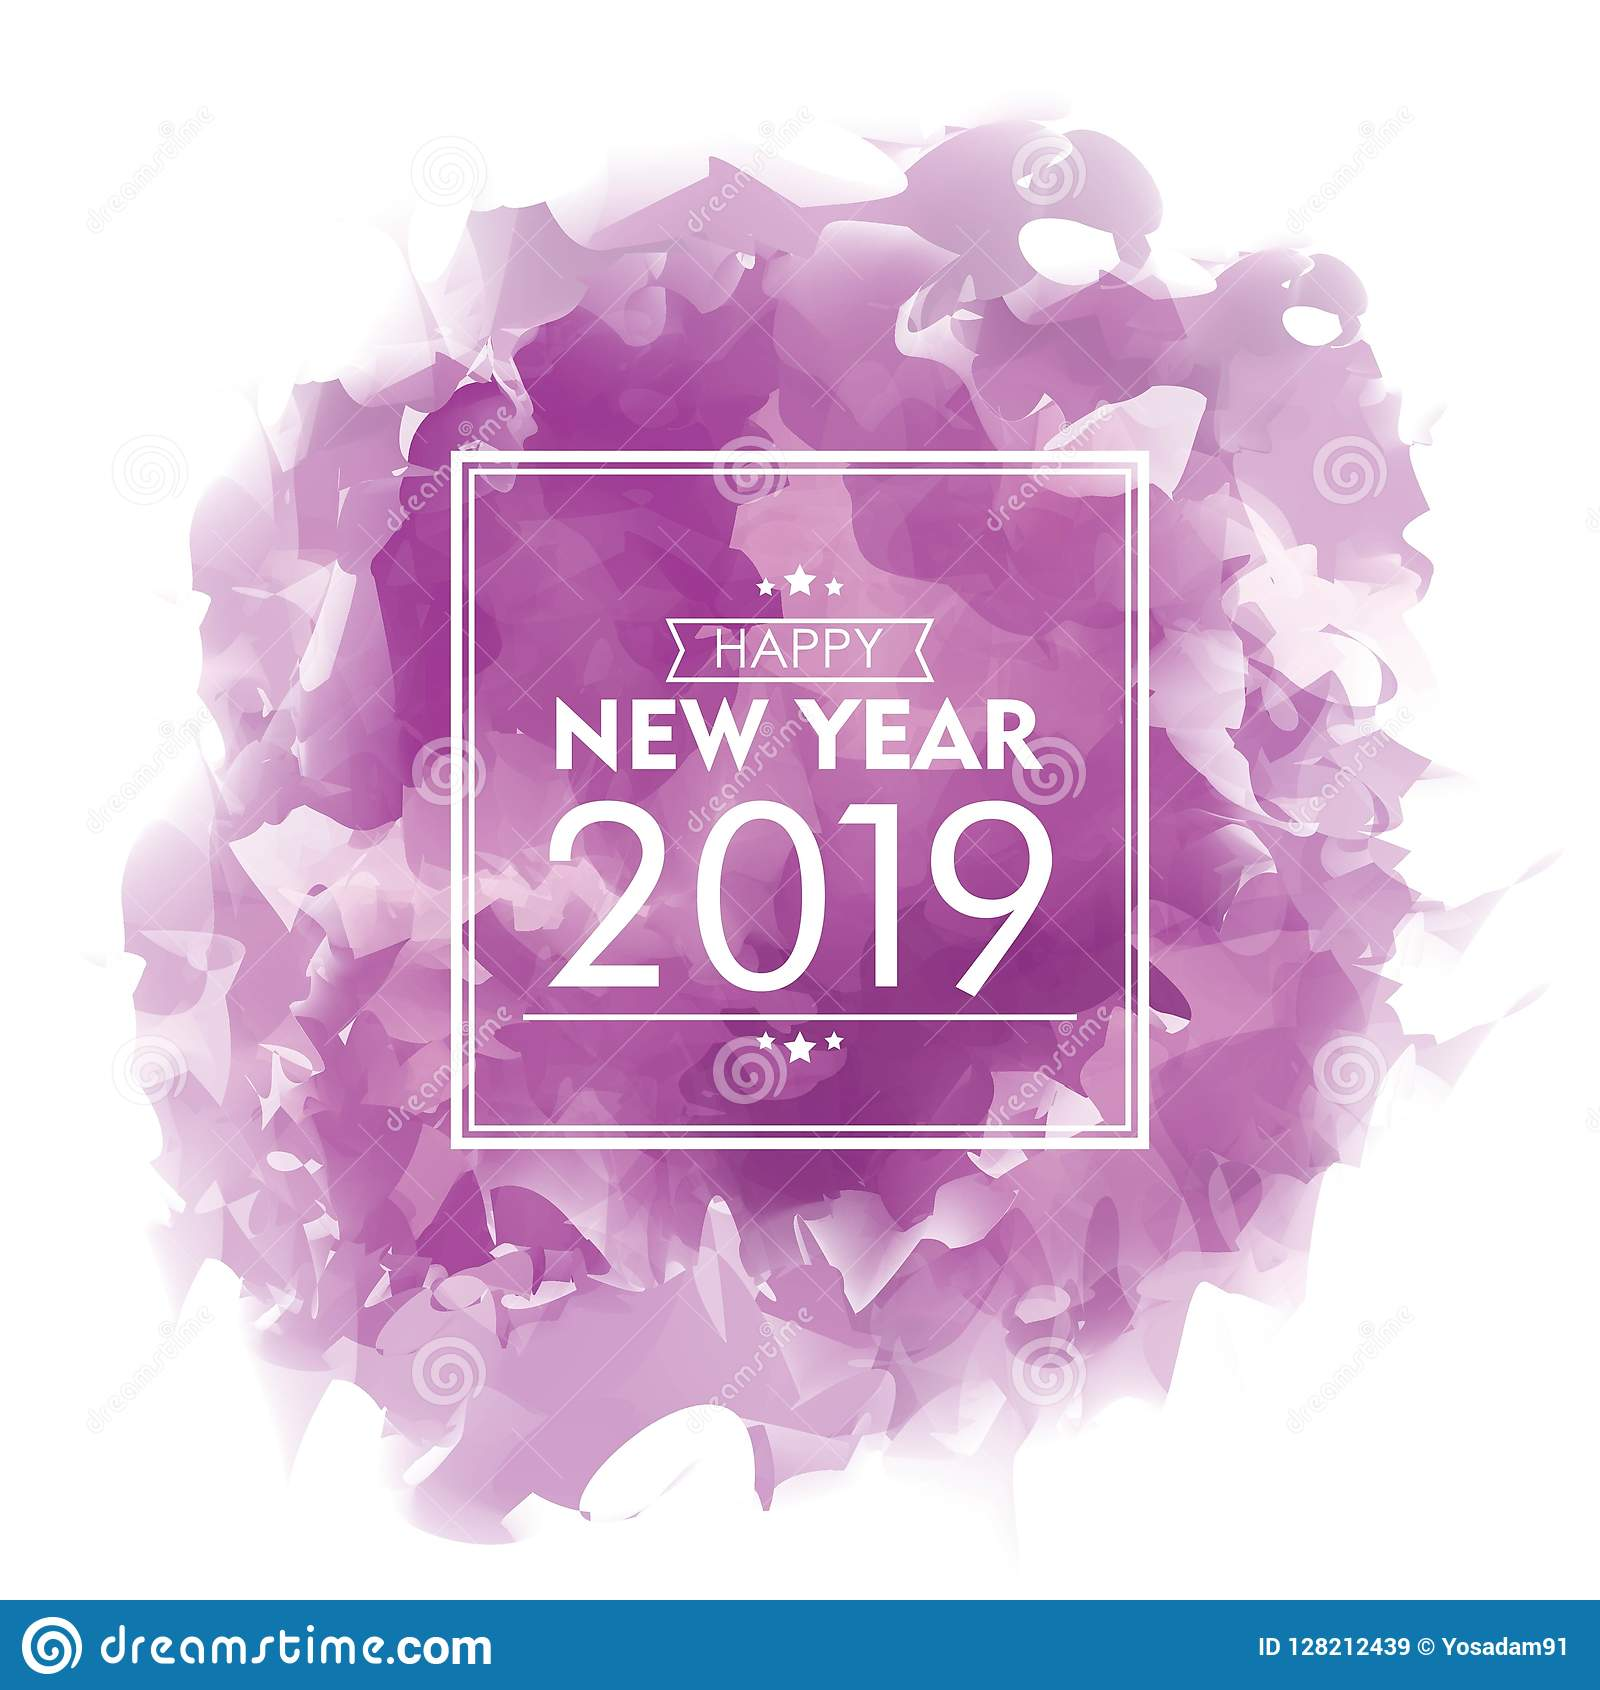 happy new year 2019 watercolor design purple cloud celebration banner vector illustration for greeting